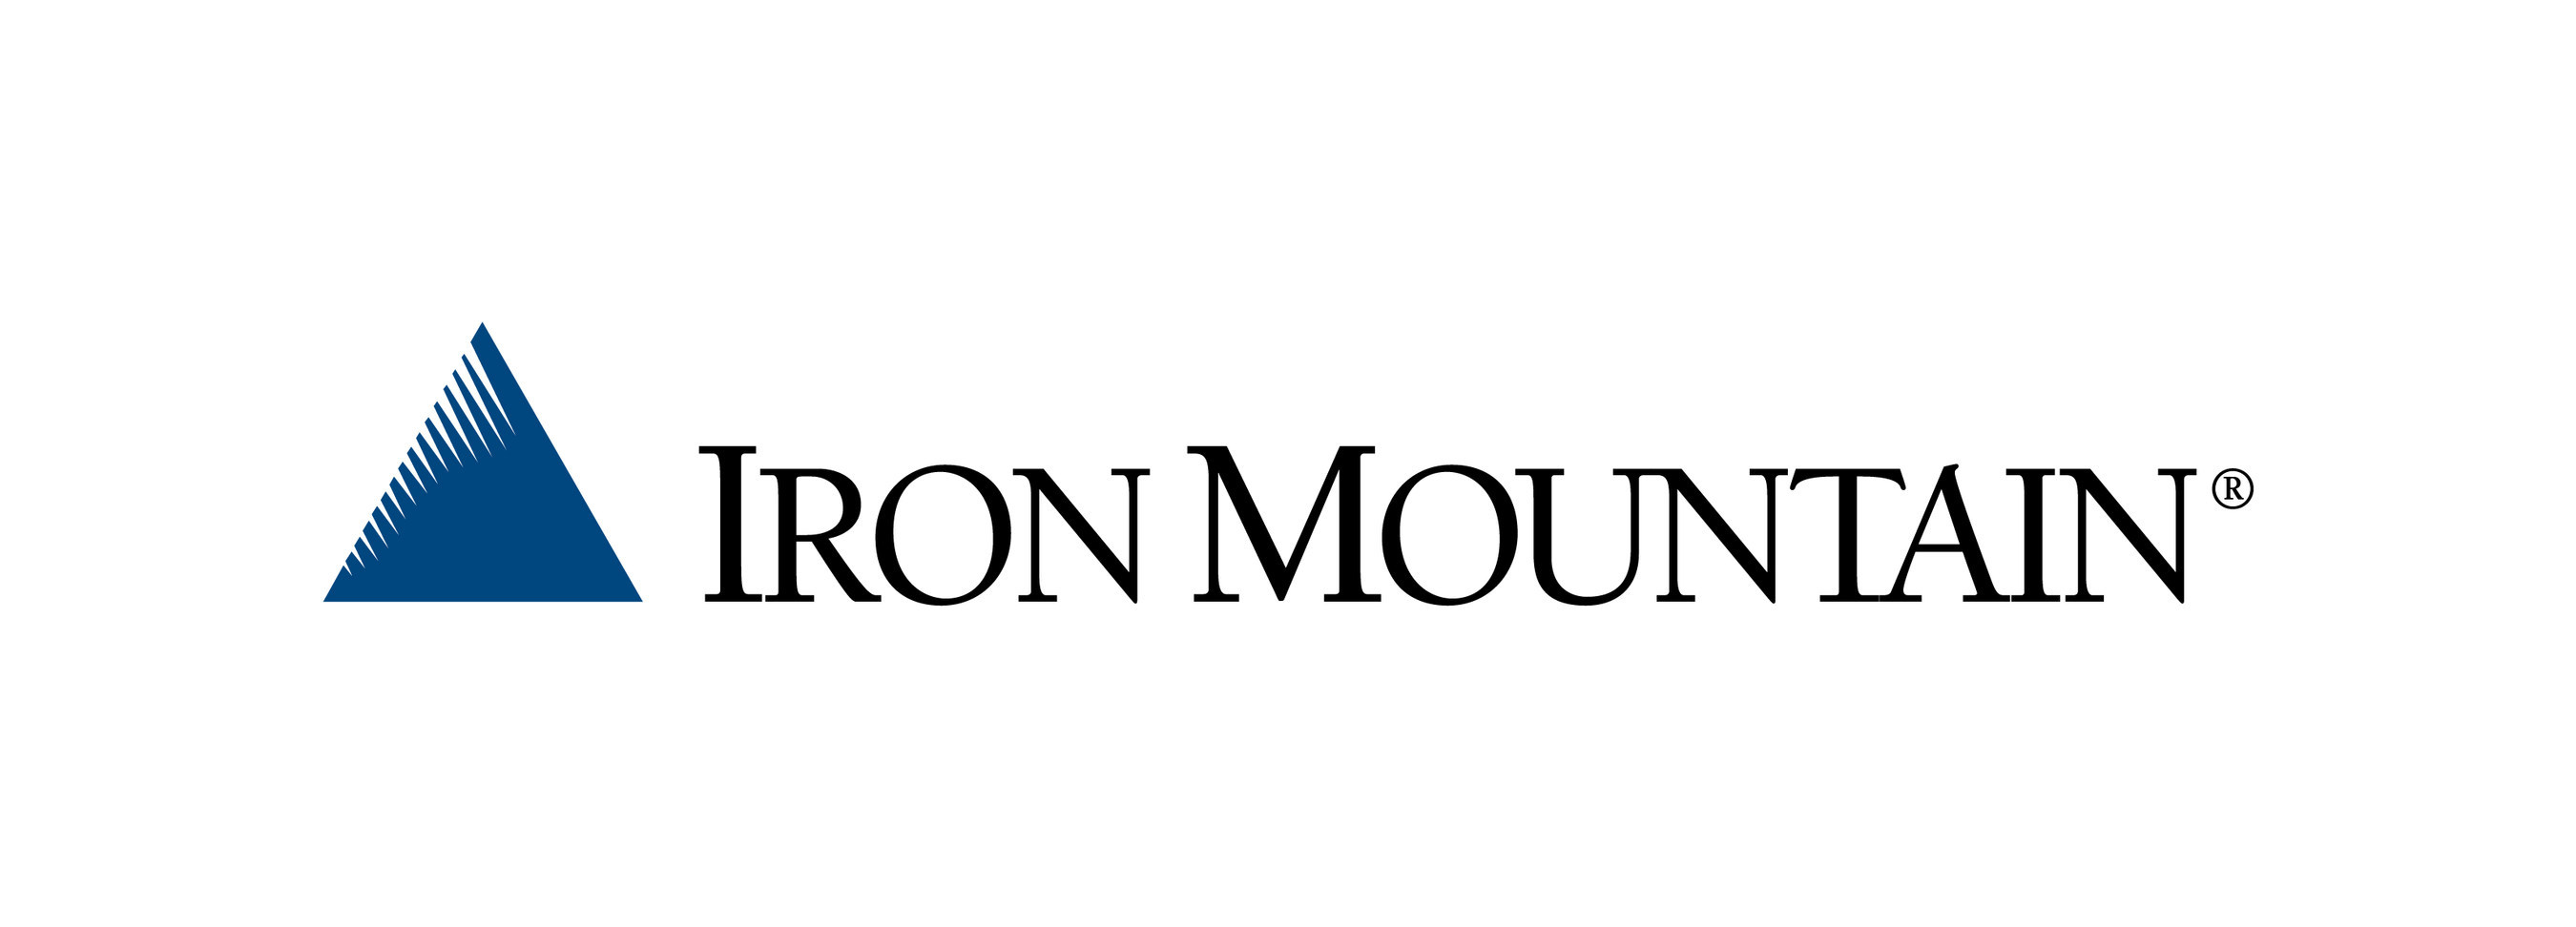 iron mountain latino personals Iron mountain dating site, iron mountain personals, iron mountain singles luvfreecom is a 100% free online dating and personal ads site there are a lot of iron mountain singles searching romance, friendship, fun and more dates.